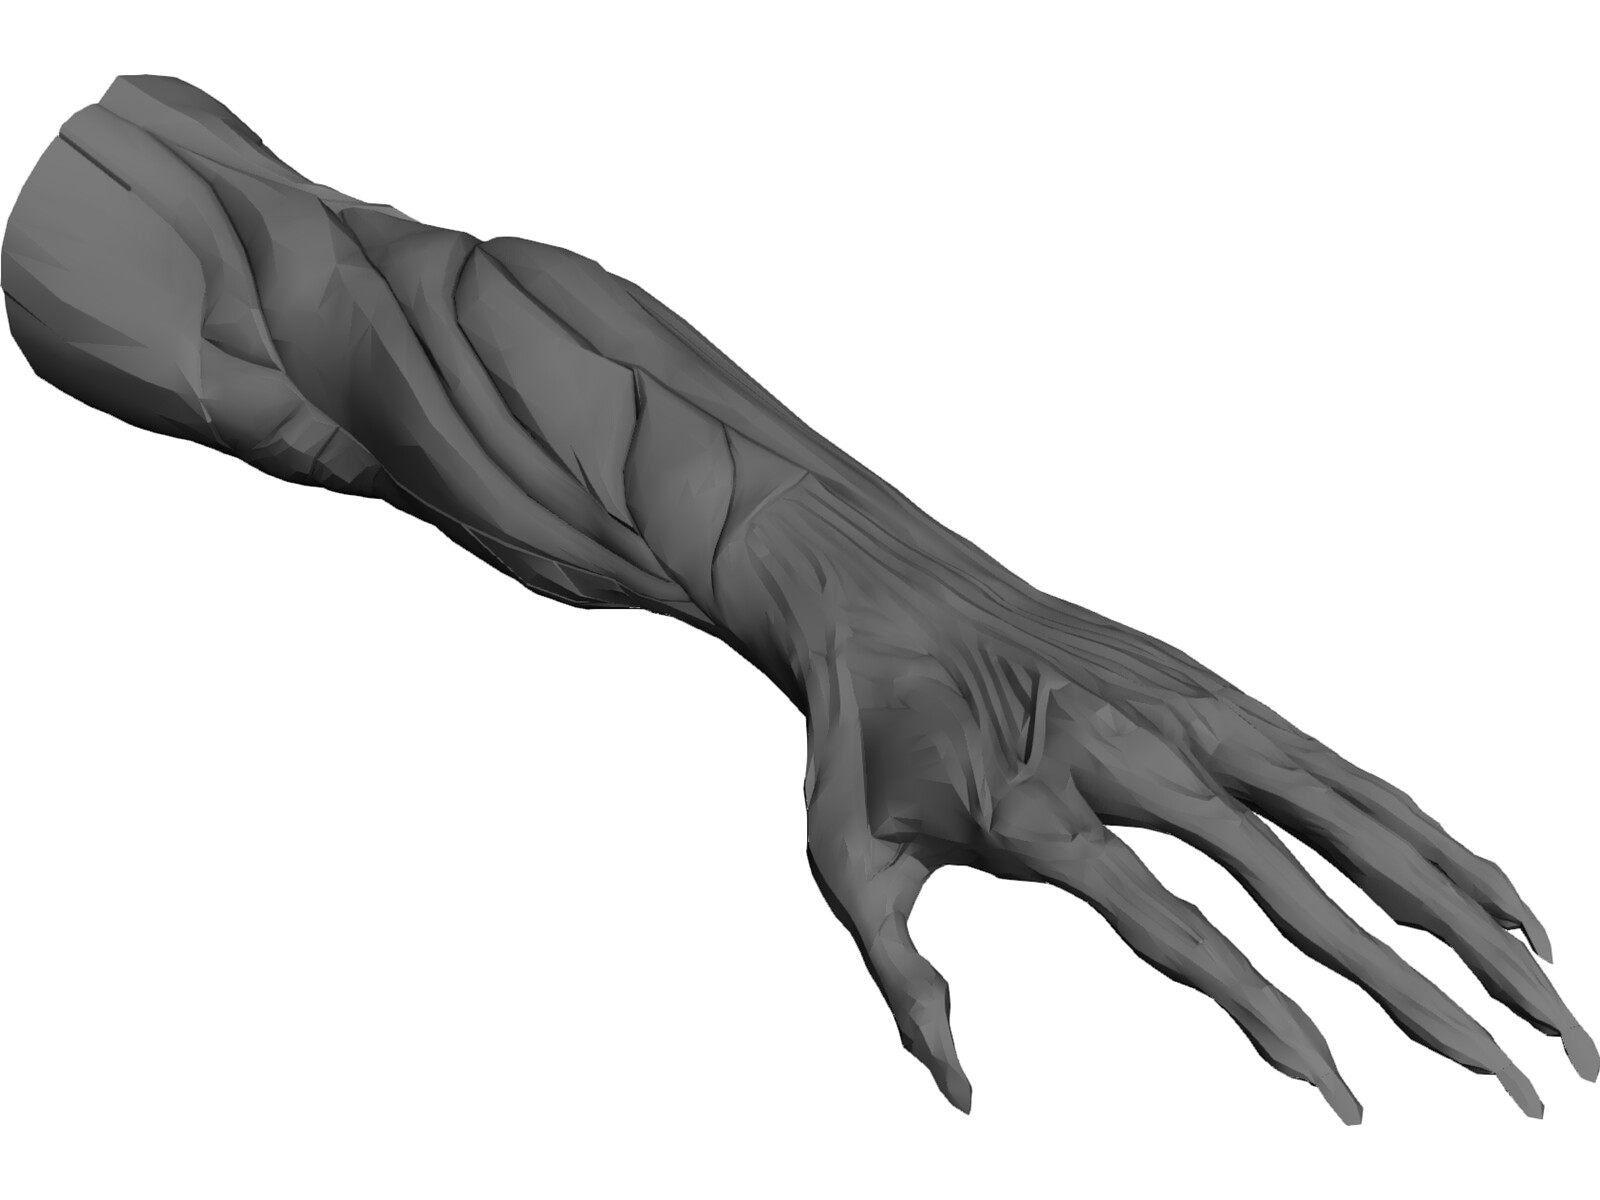 arm muscles 3d model download - 3d cad browser, Muscles